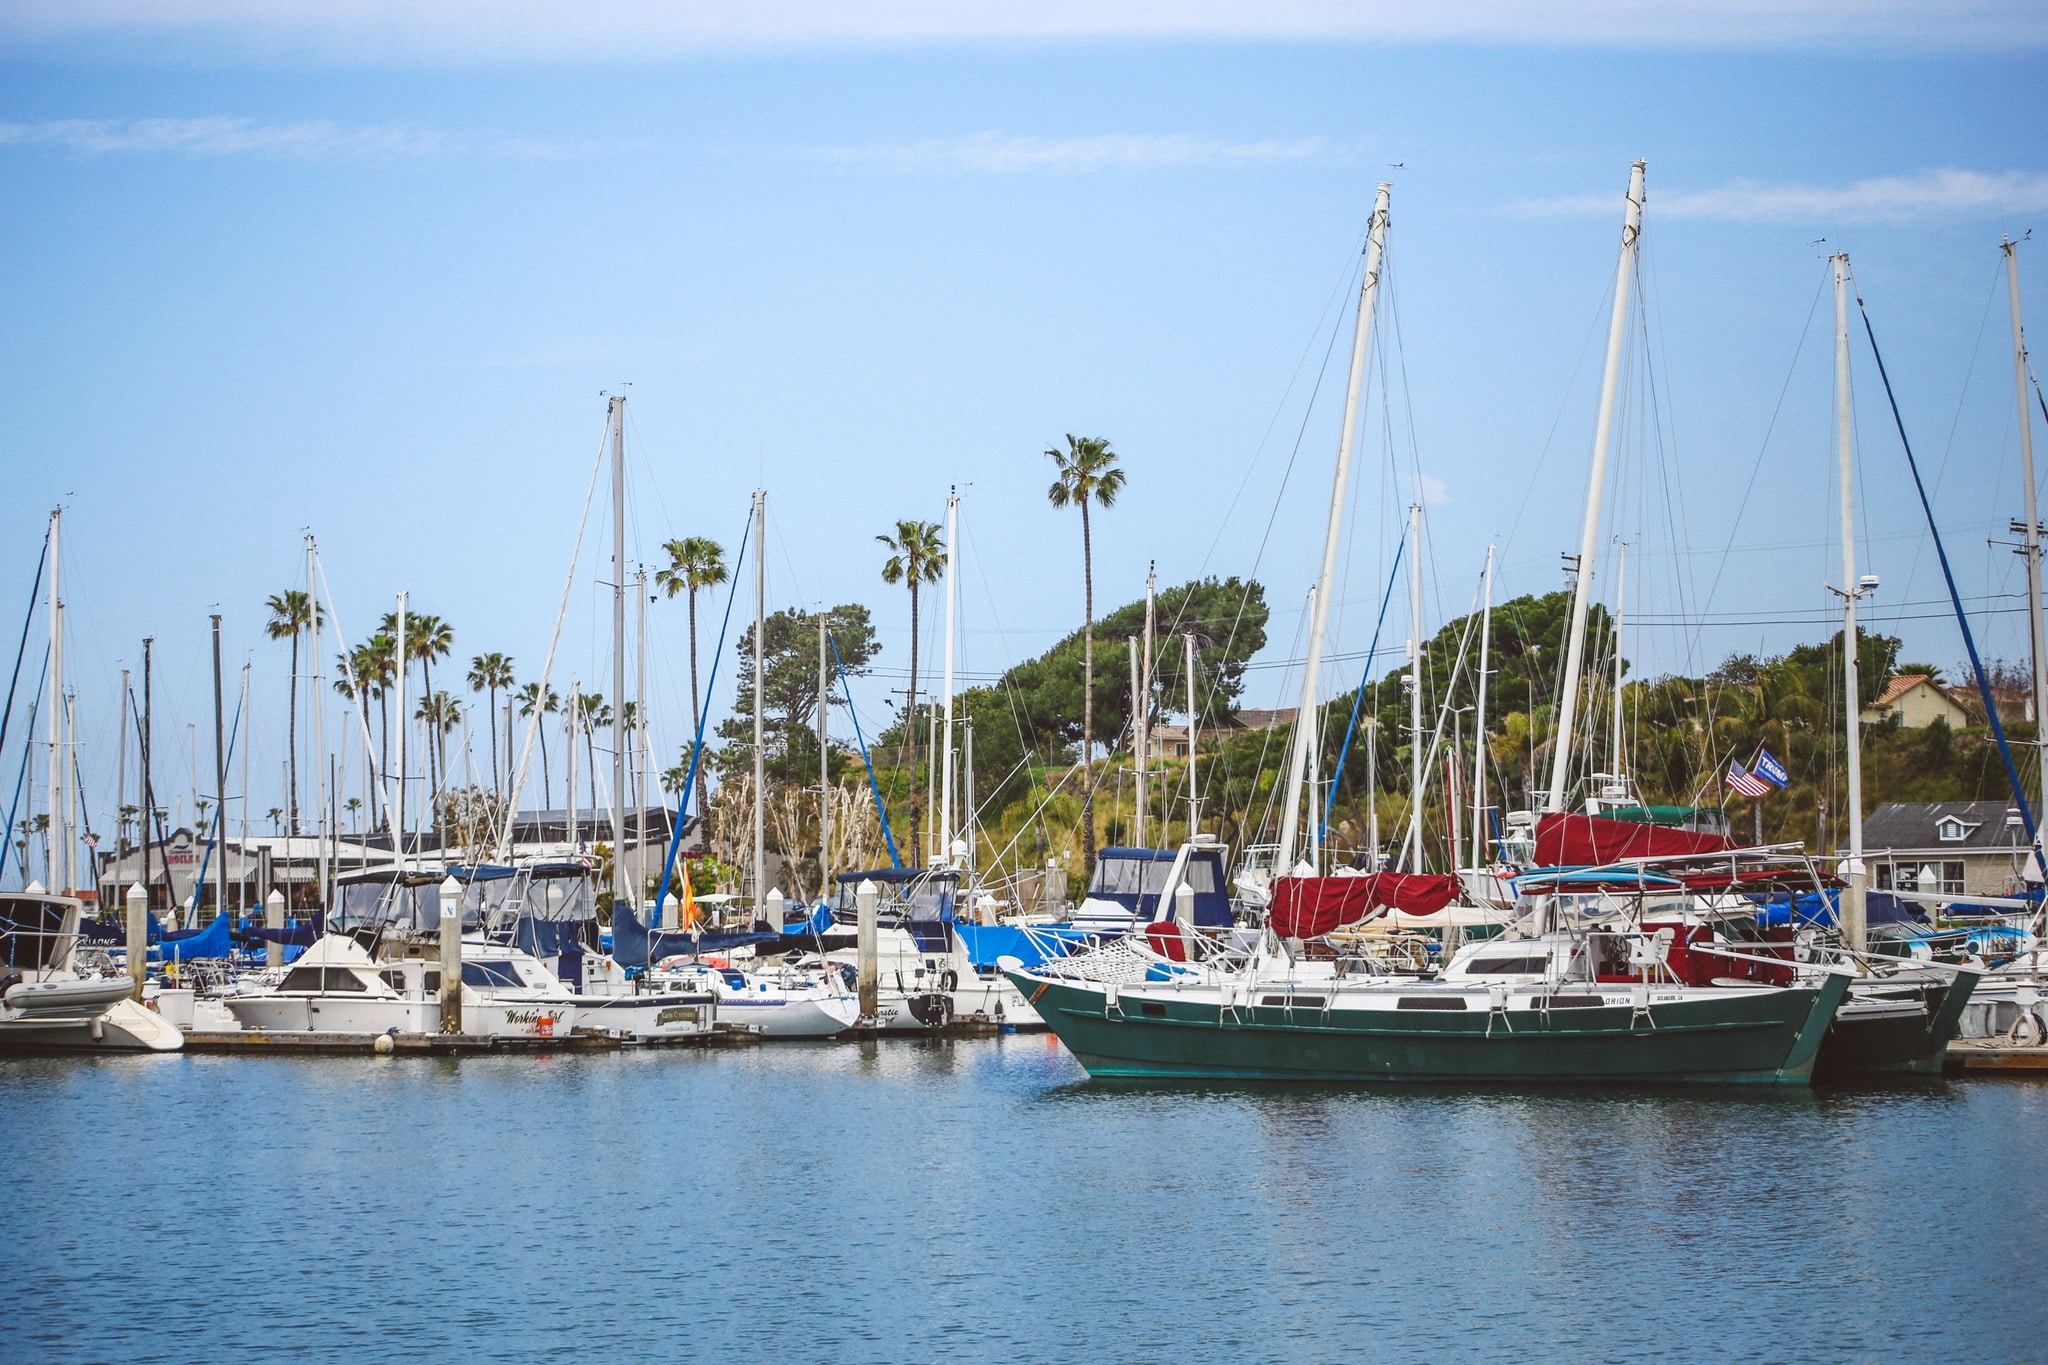 Boats at the docks in Oceanside, Ca